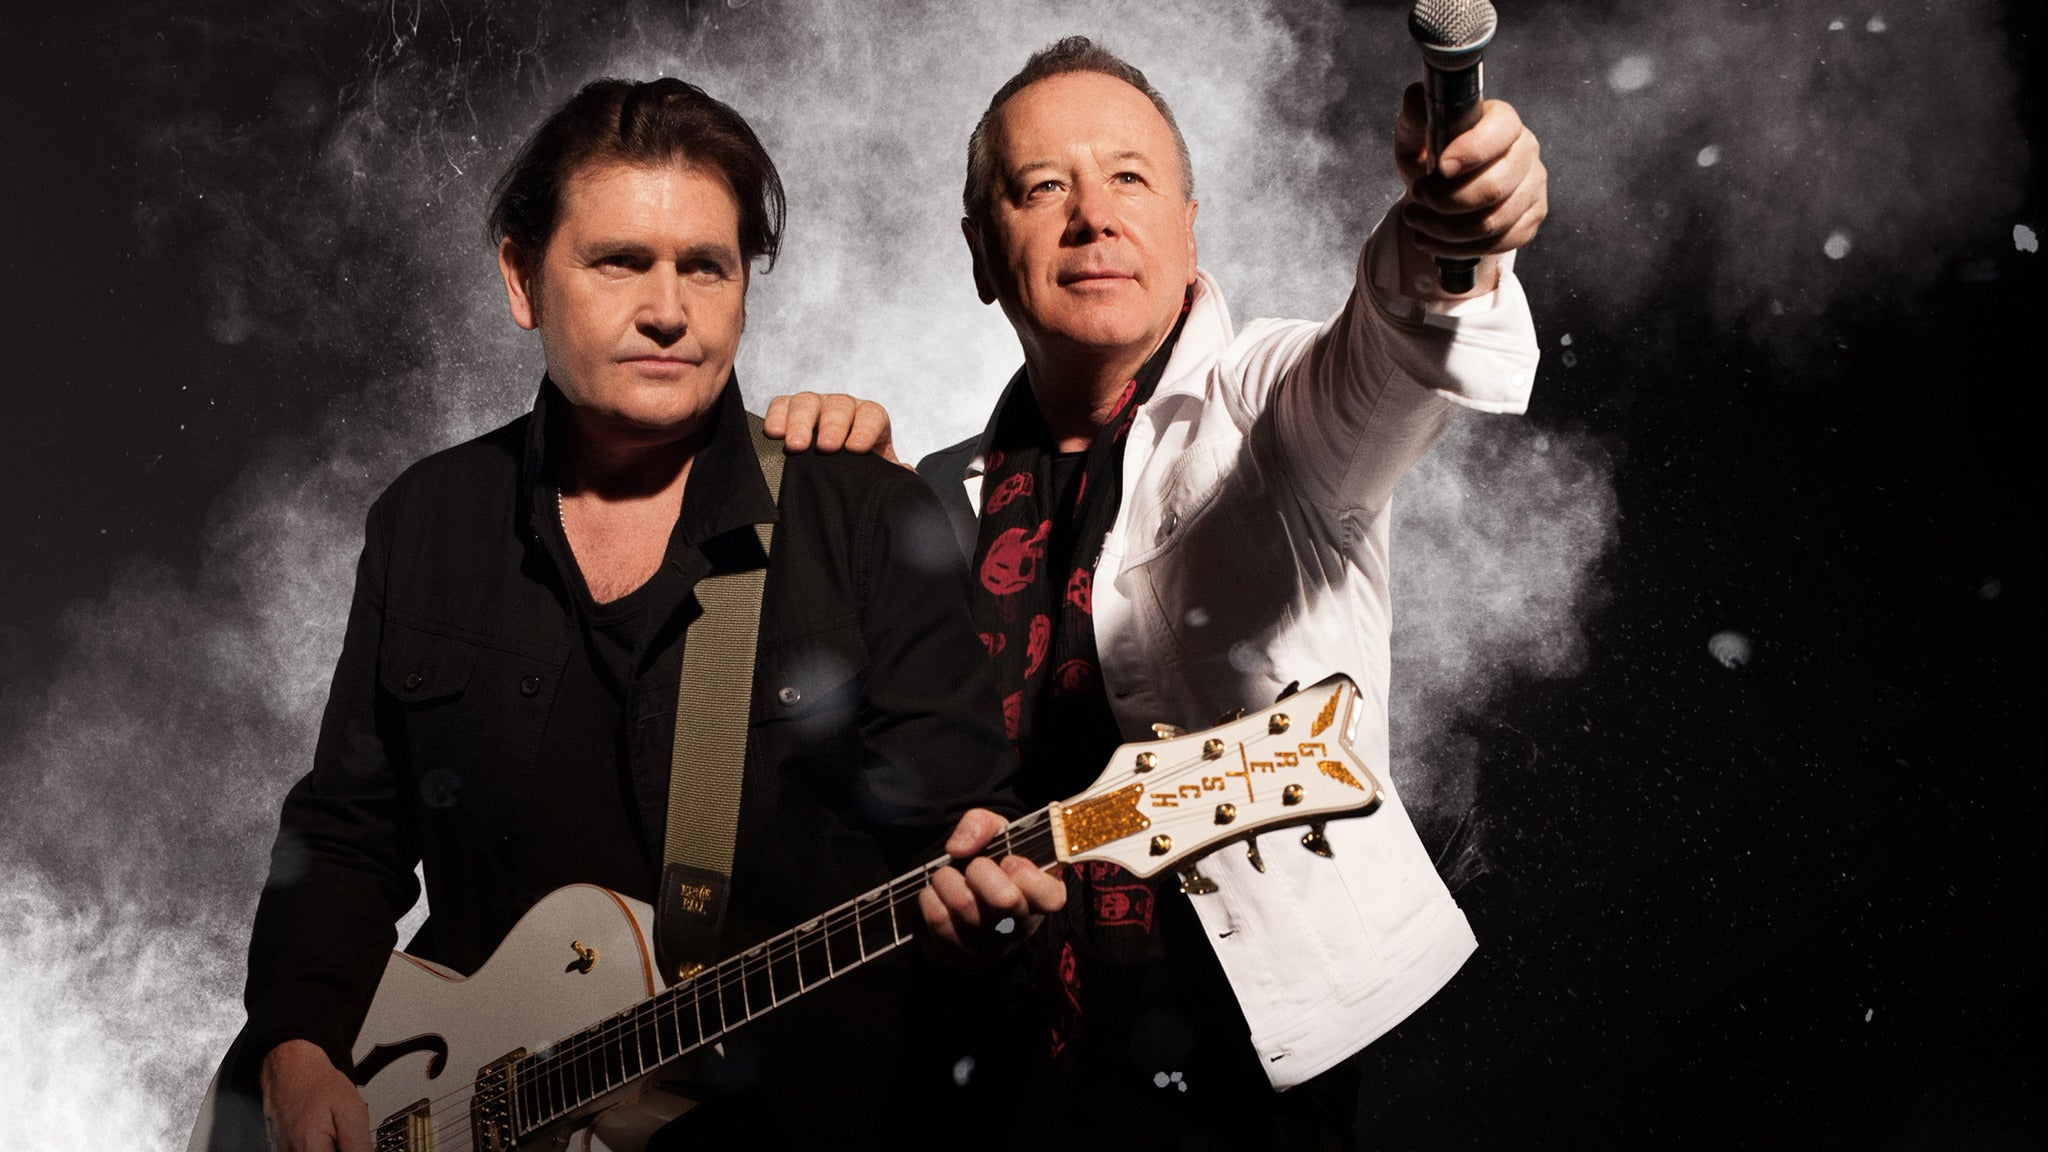 Simple Minds at Count Basie Center for the Arts - Red Bank, NJ 07701